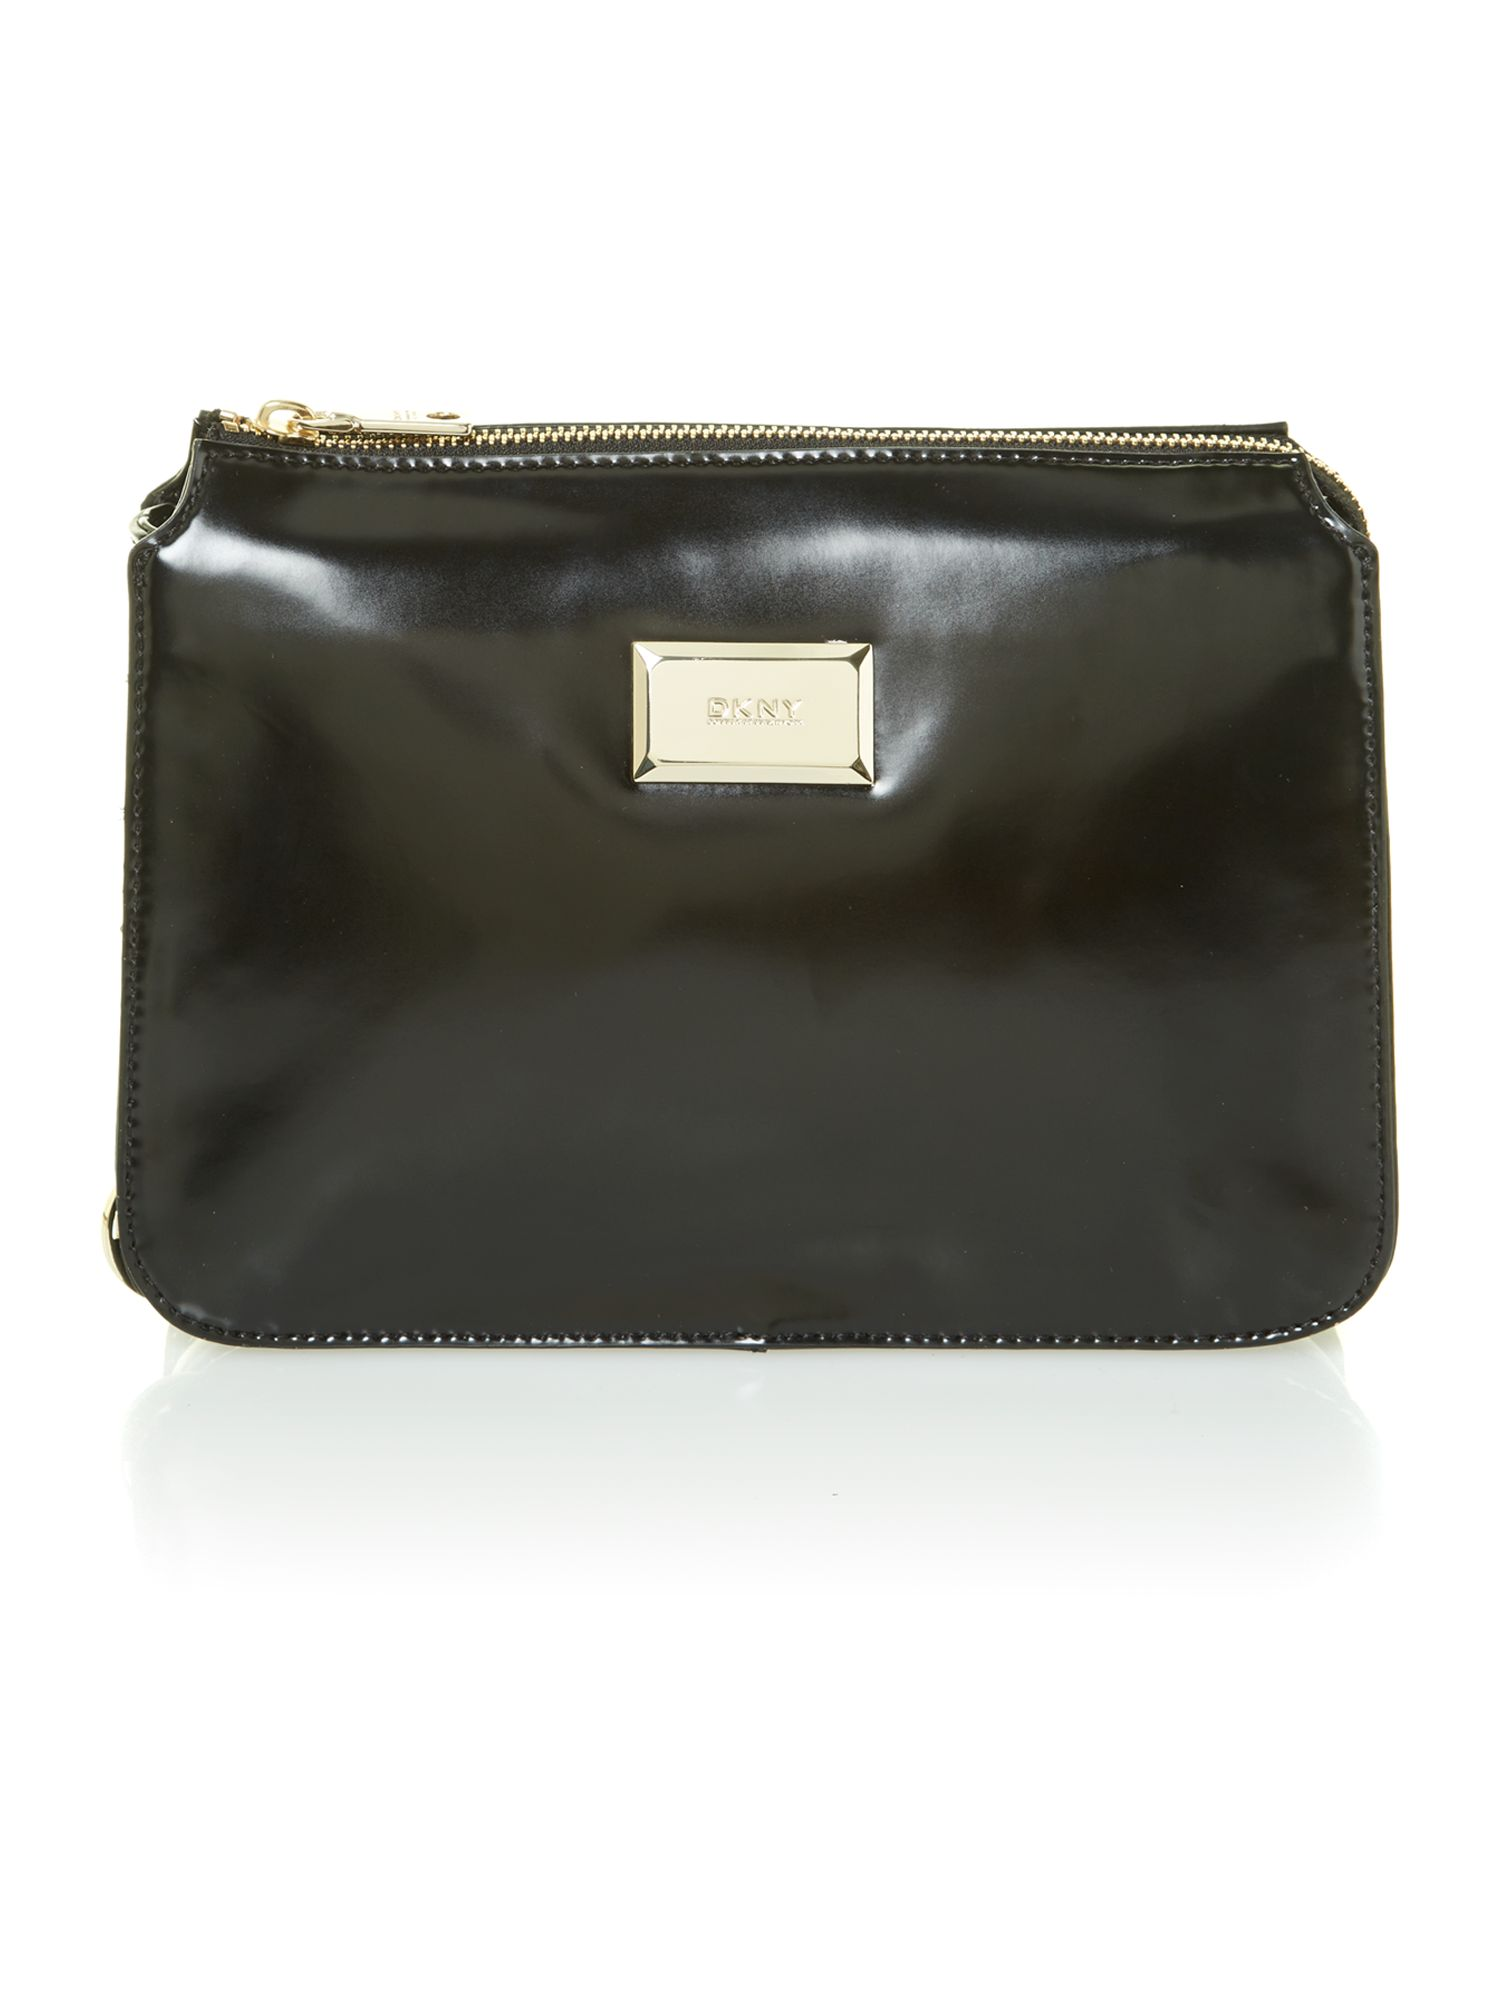 Hudson items black cross body bag